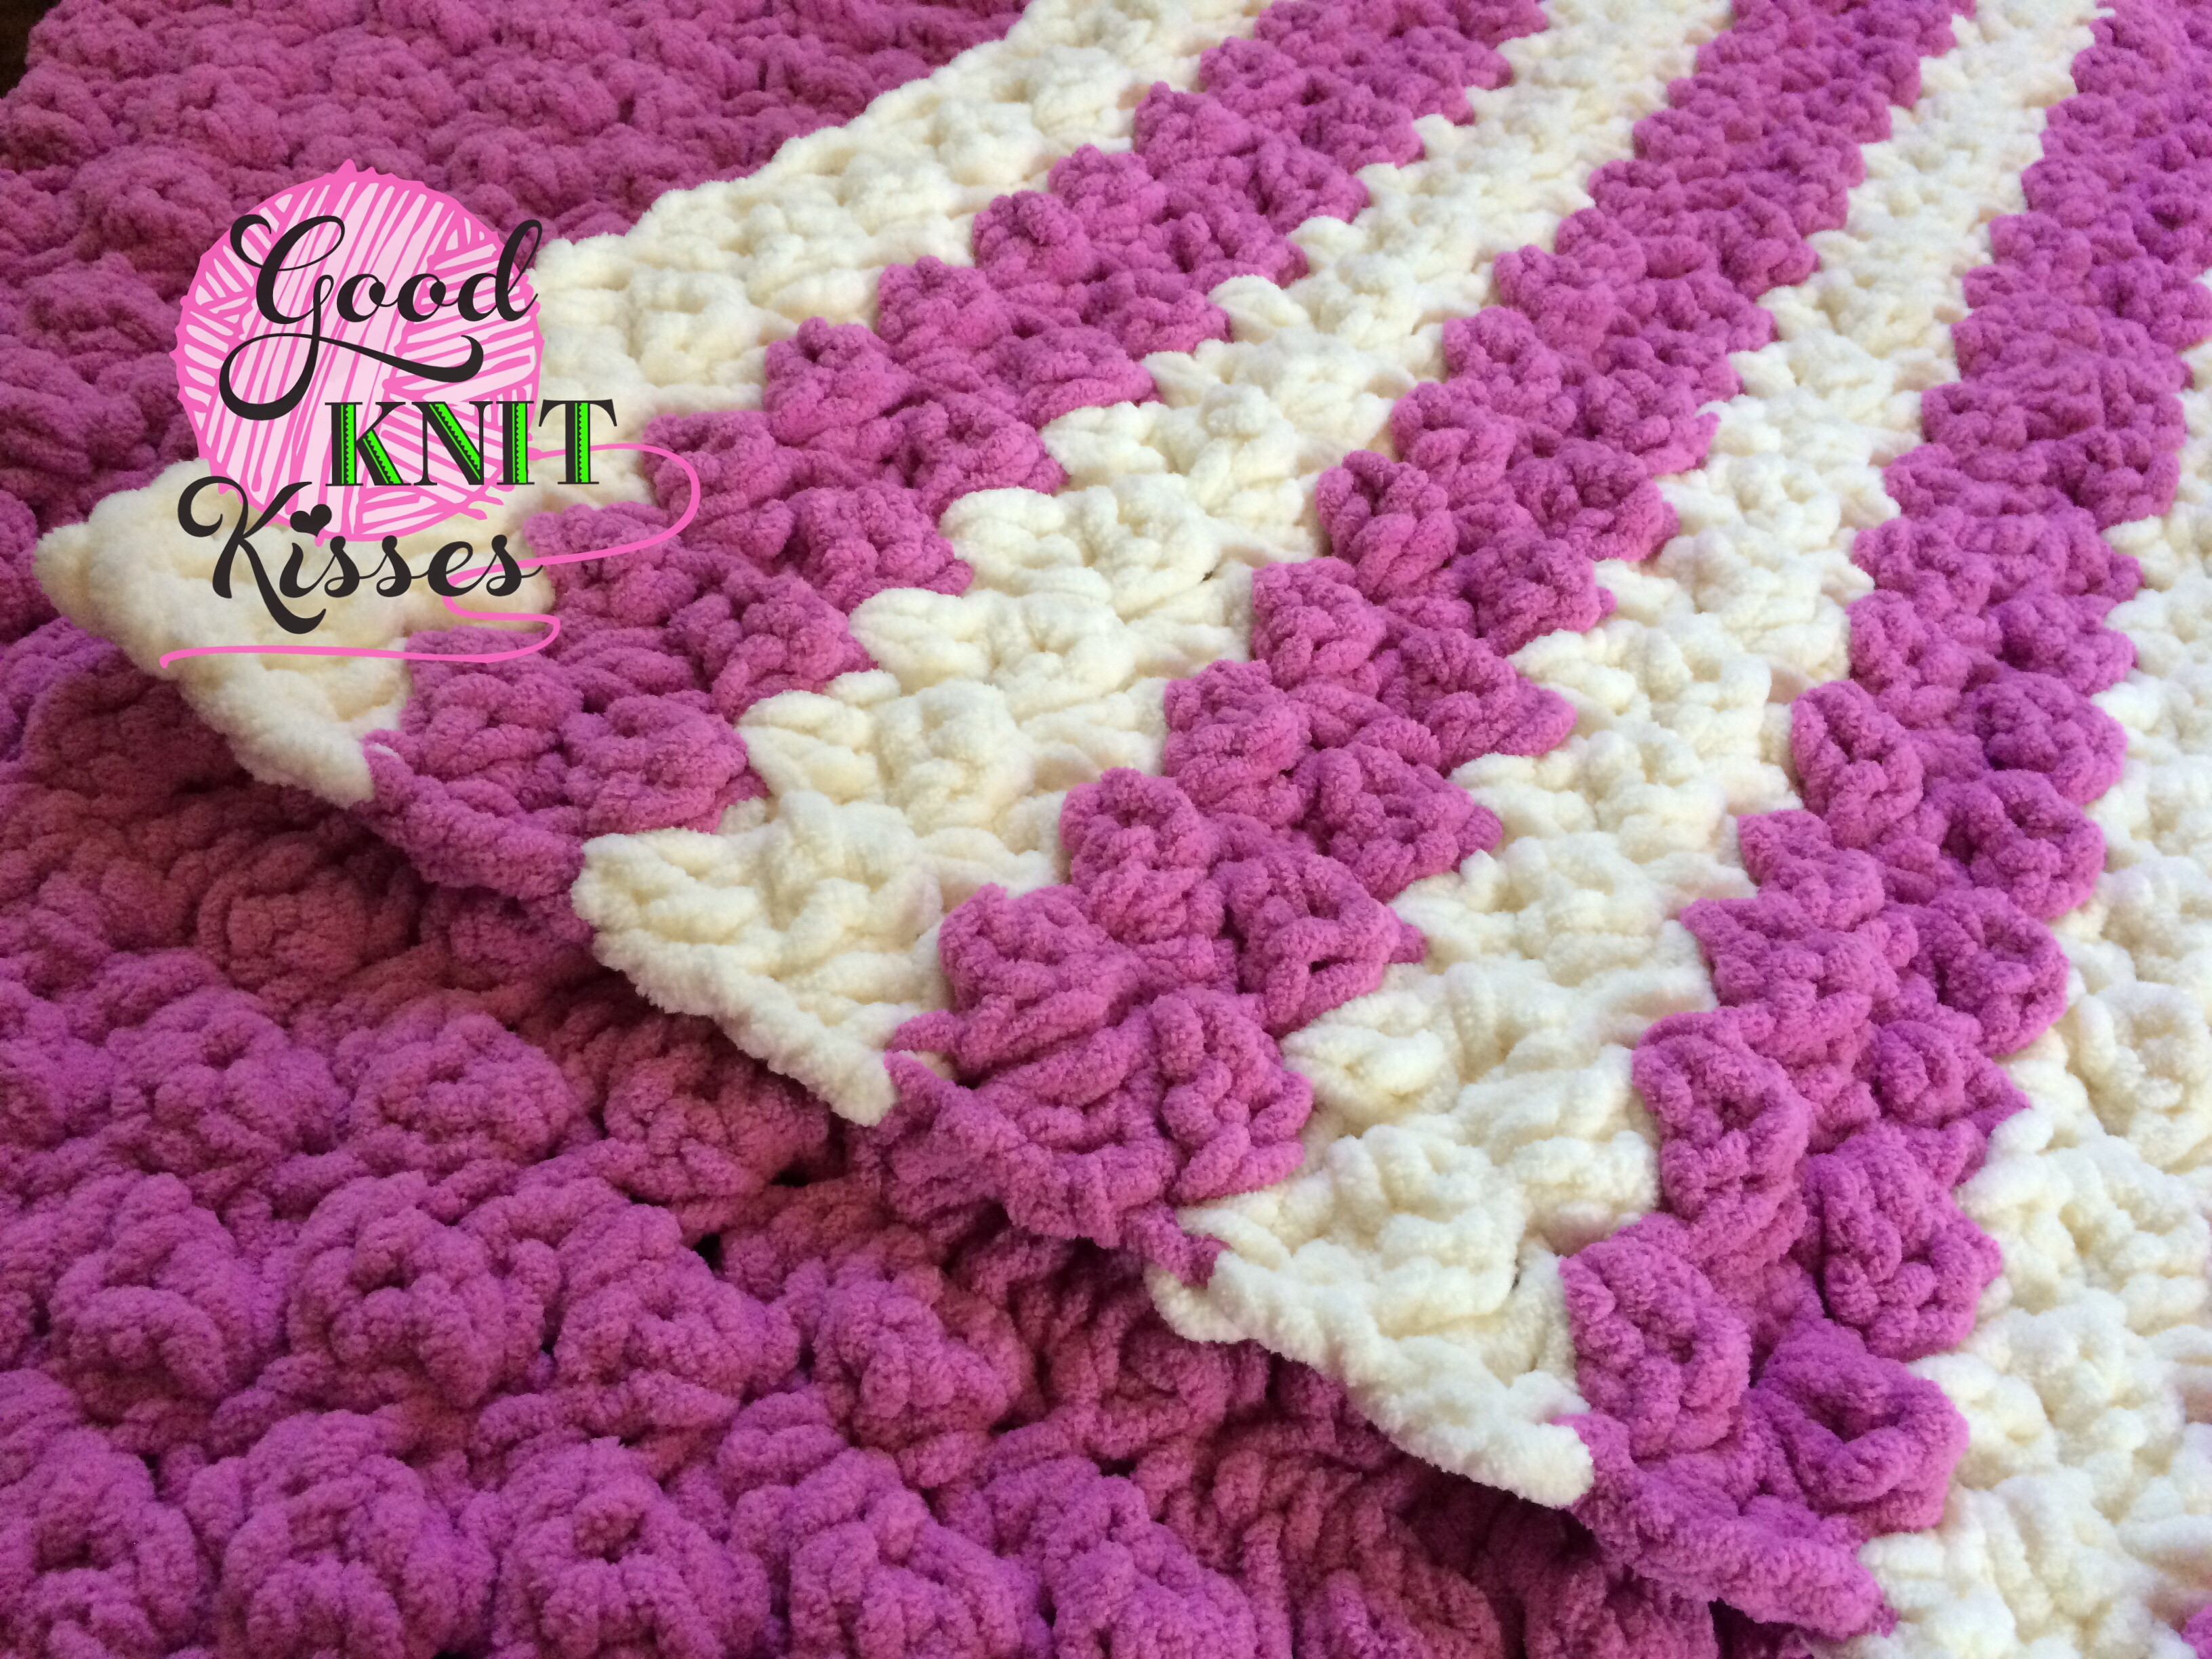 New Marshmallow Crochet Baby Blanket Goodknit Kisses Best Crochet Stitch for Blanket Of Perfect 45 Ideas Best Crochet Stitch for Blanket